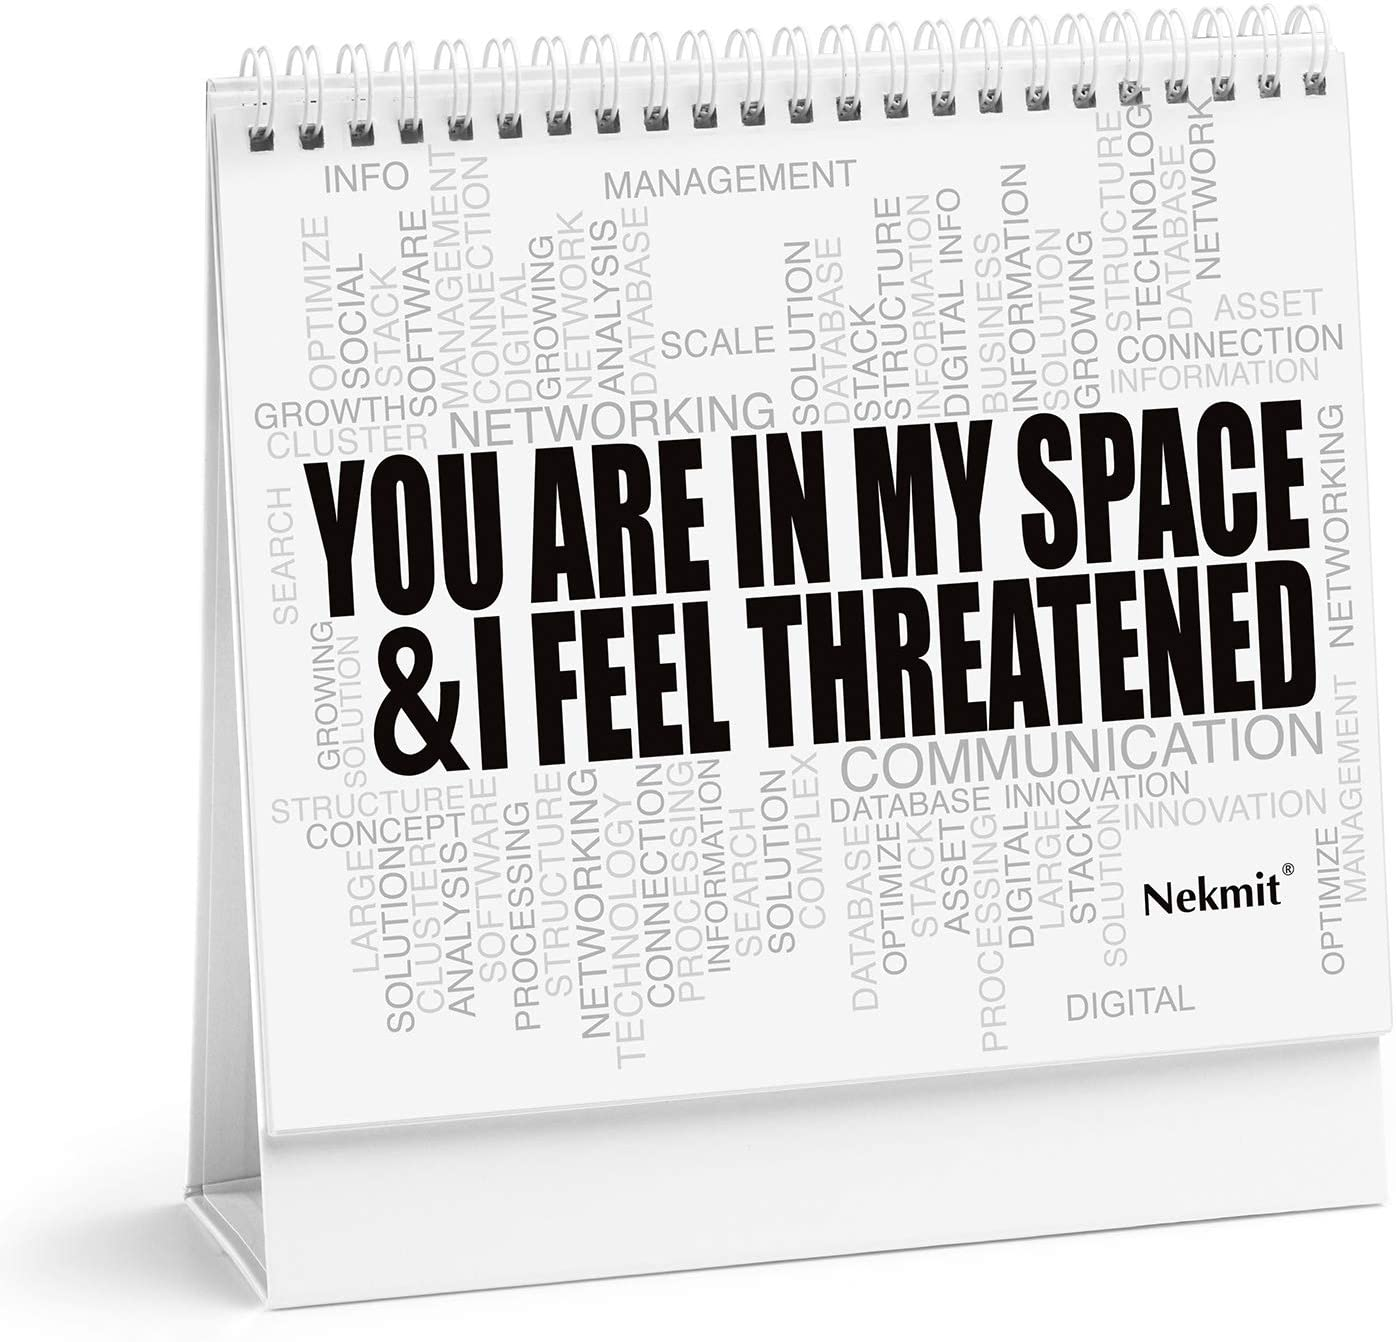 Funny Office Mood Cards for Business Workplace- Gift Box Included, 15 Hilarious Messages and Emotions, with Blank Boards for Personalized Messages